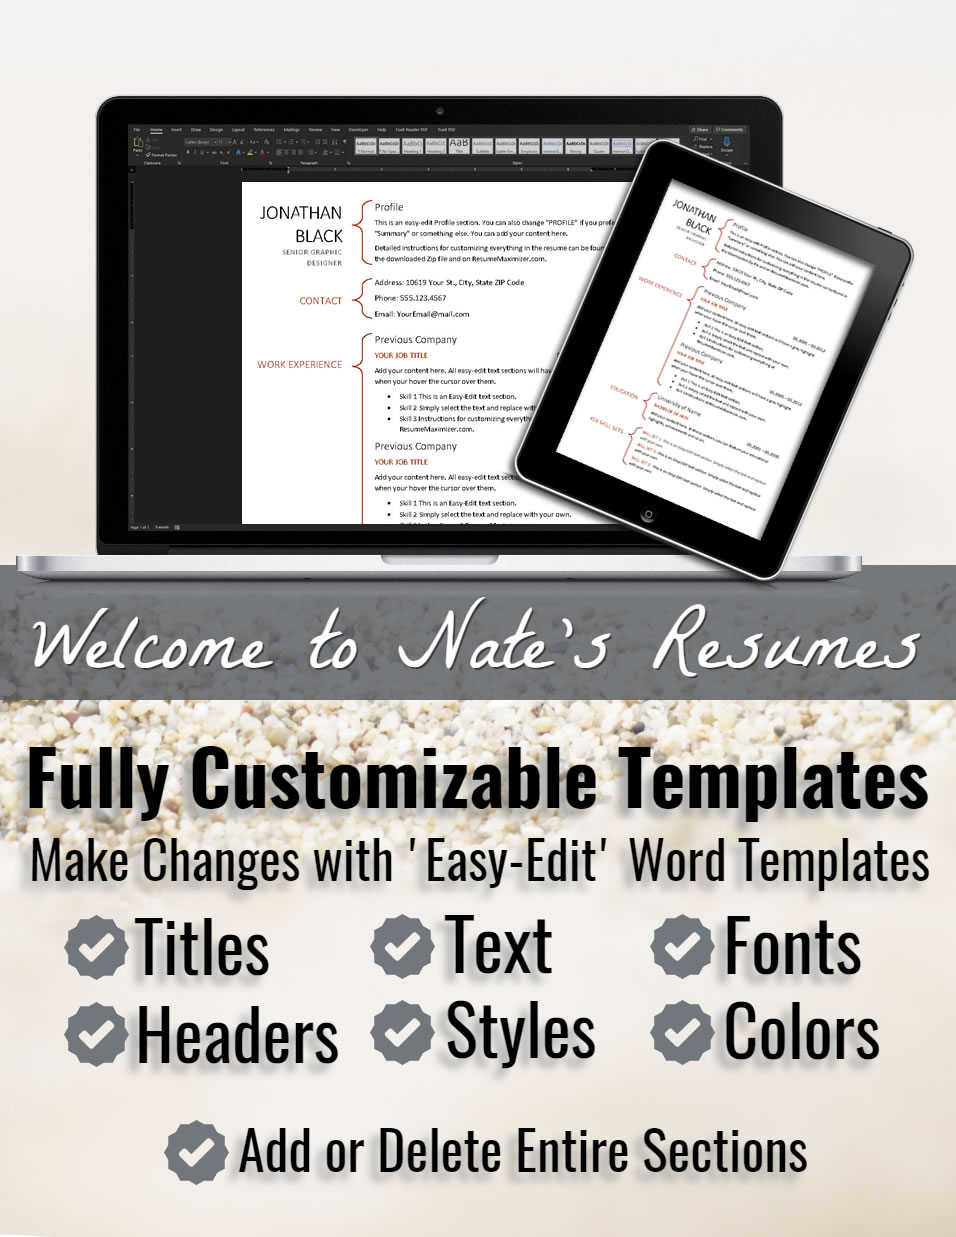 Droplet Prime - Make-Easy-Edits-to-Templates-LONG